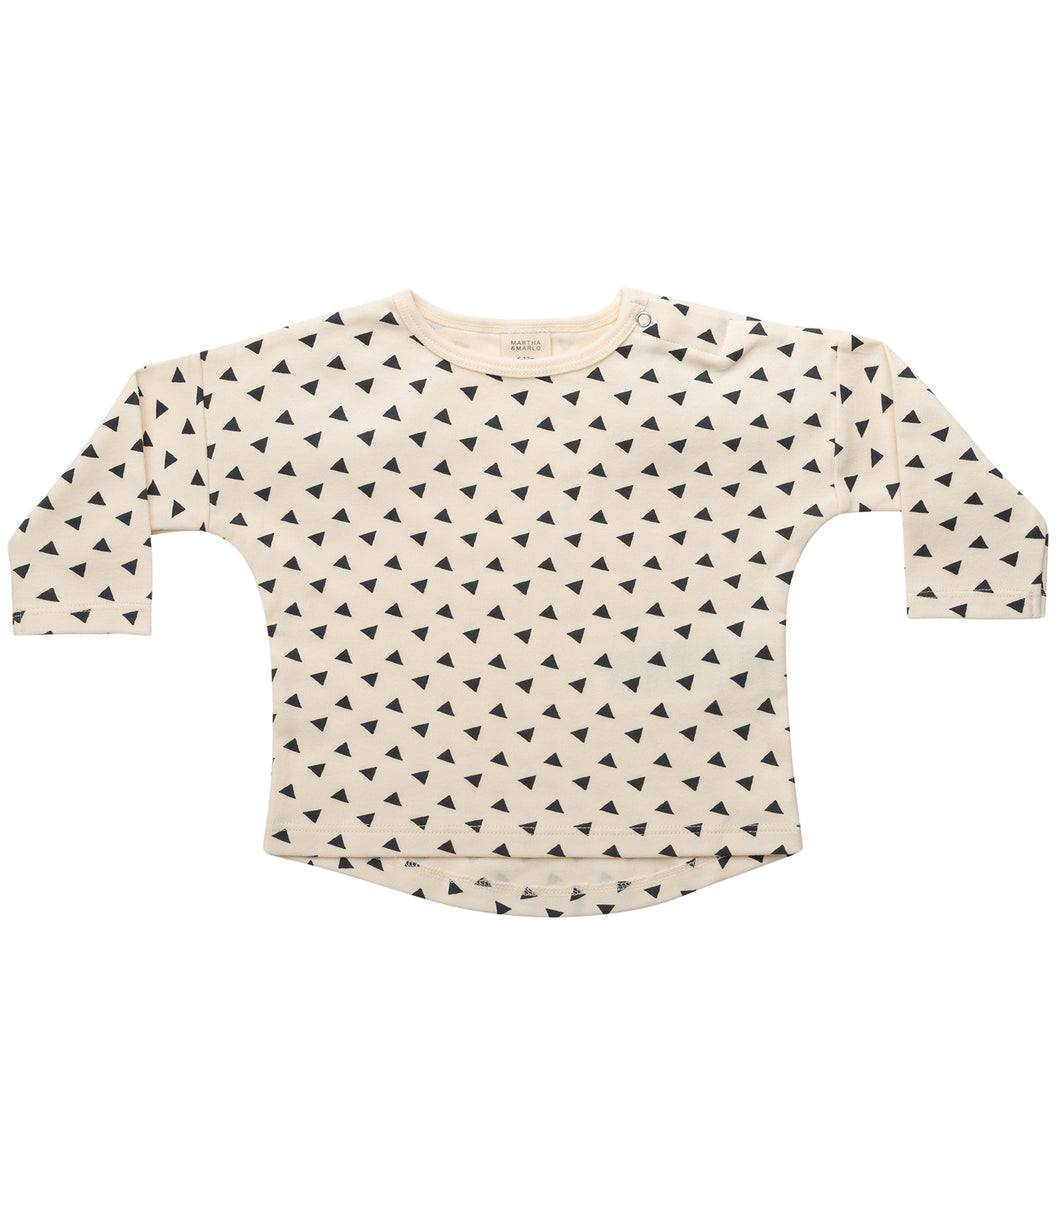 Martha & Marlo Baby Long Sleeve T-Shirt Organic Cotton Sketch Print Cream